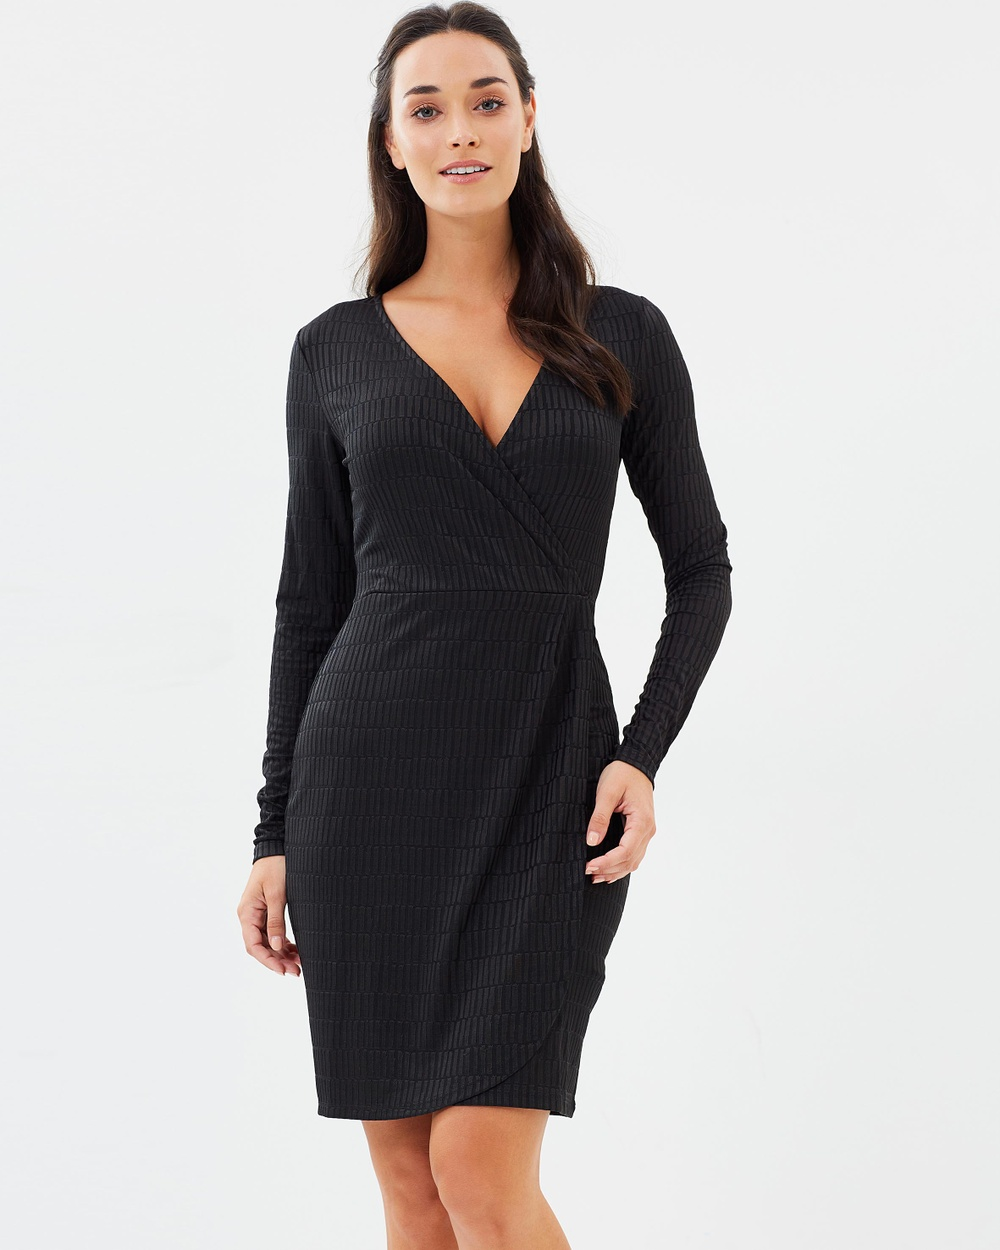 French Connection Linear Jacquard Dress Bodycon Dresses Graphite Linear Jacquard Dress